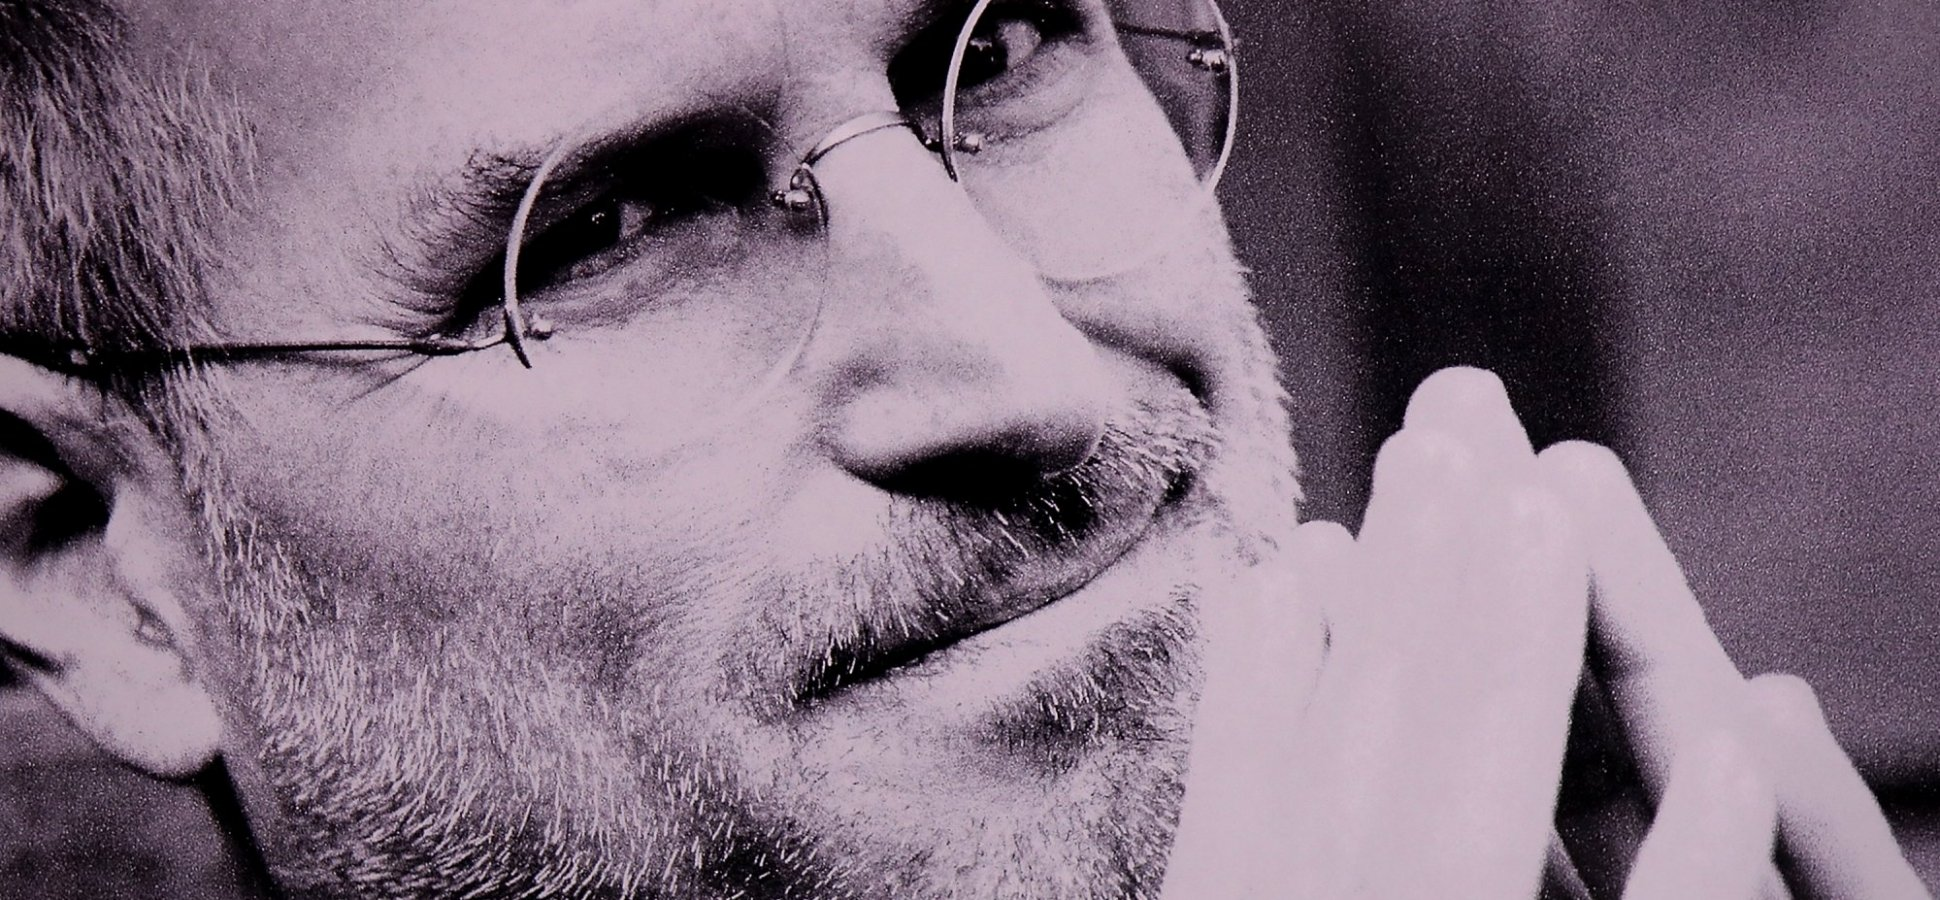 Steve Jobs Used These 3 Deceptively Simple Questions to Turn Apple into an Innovation Powerhouse